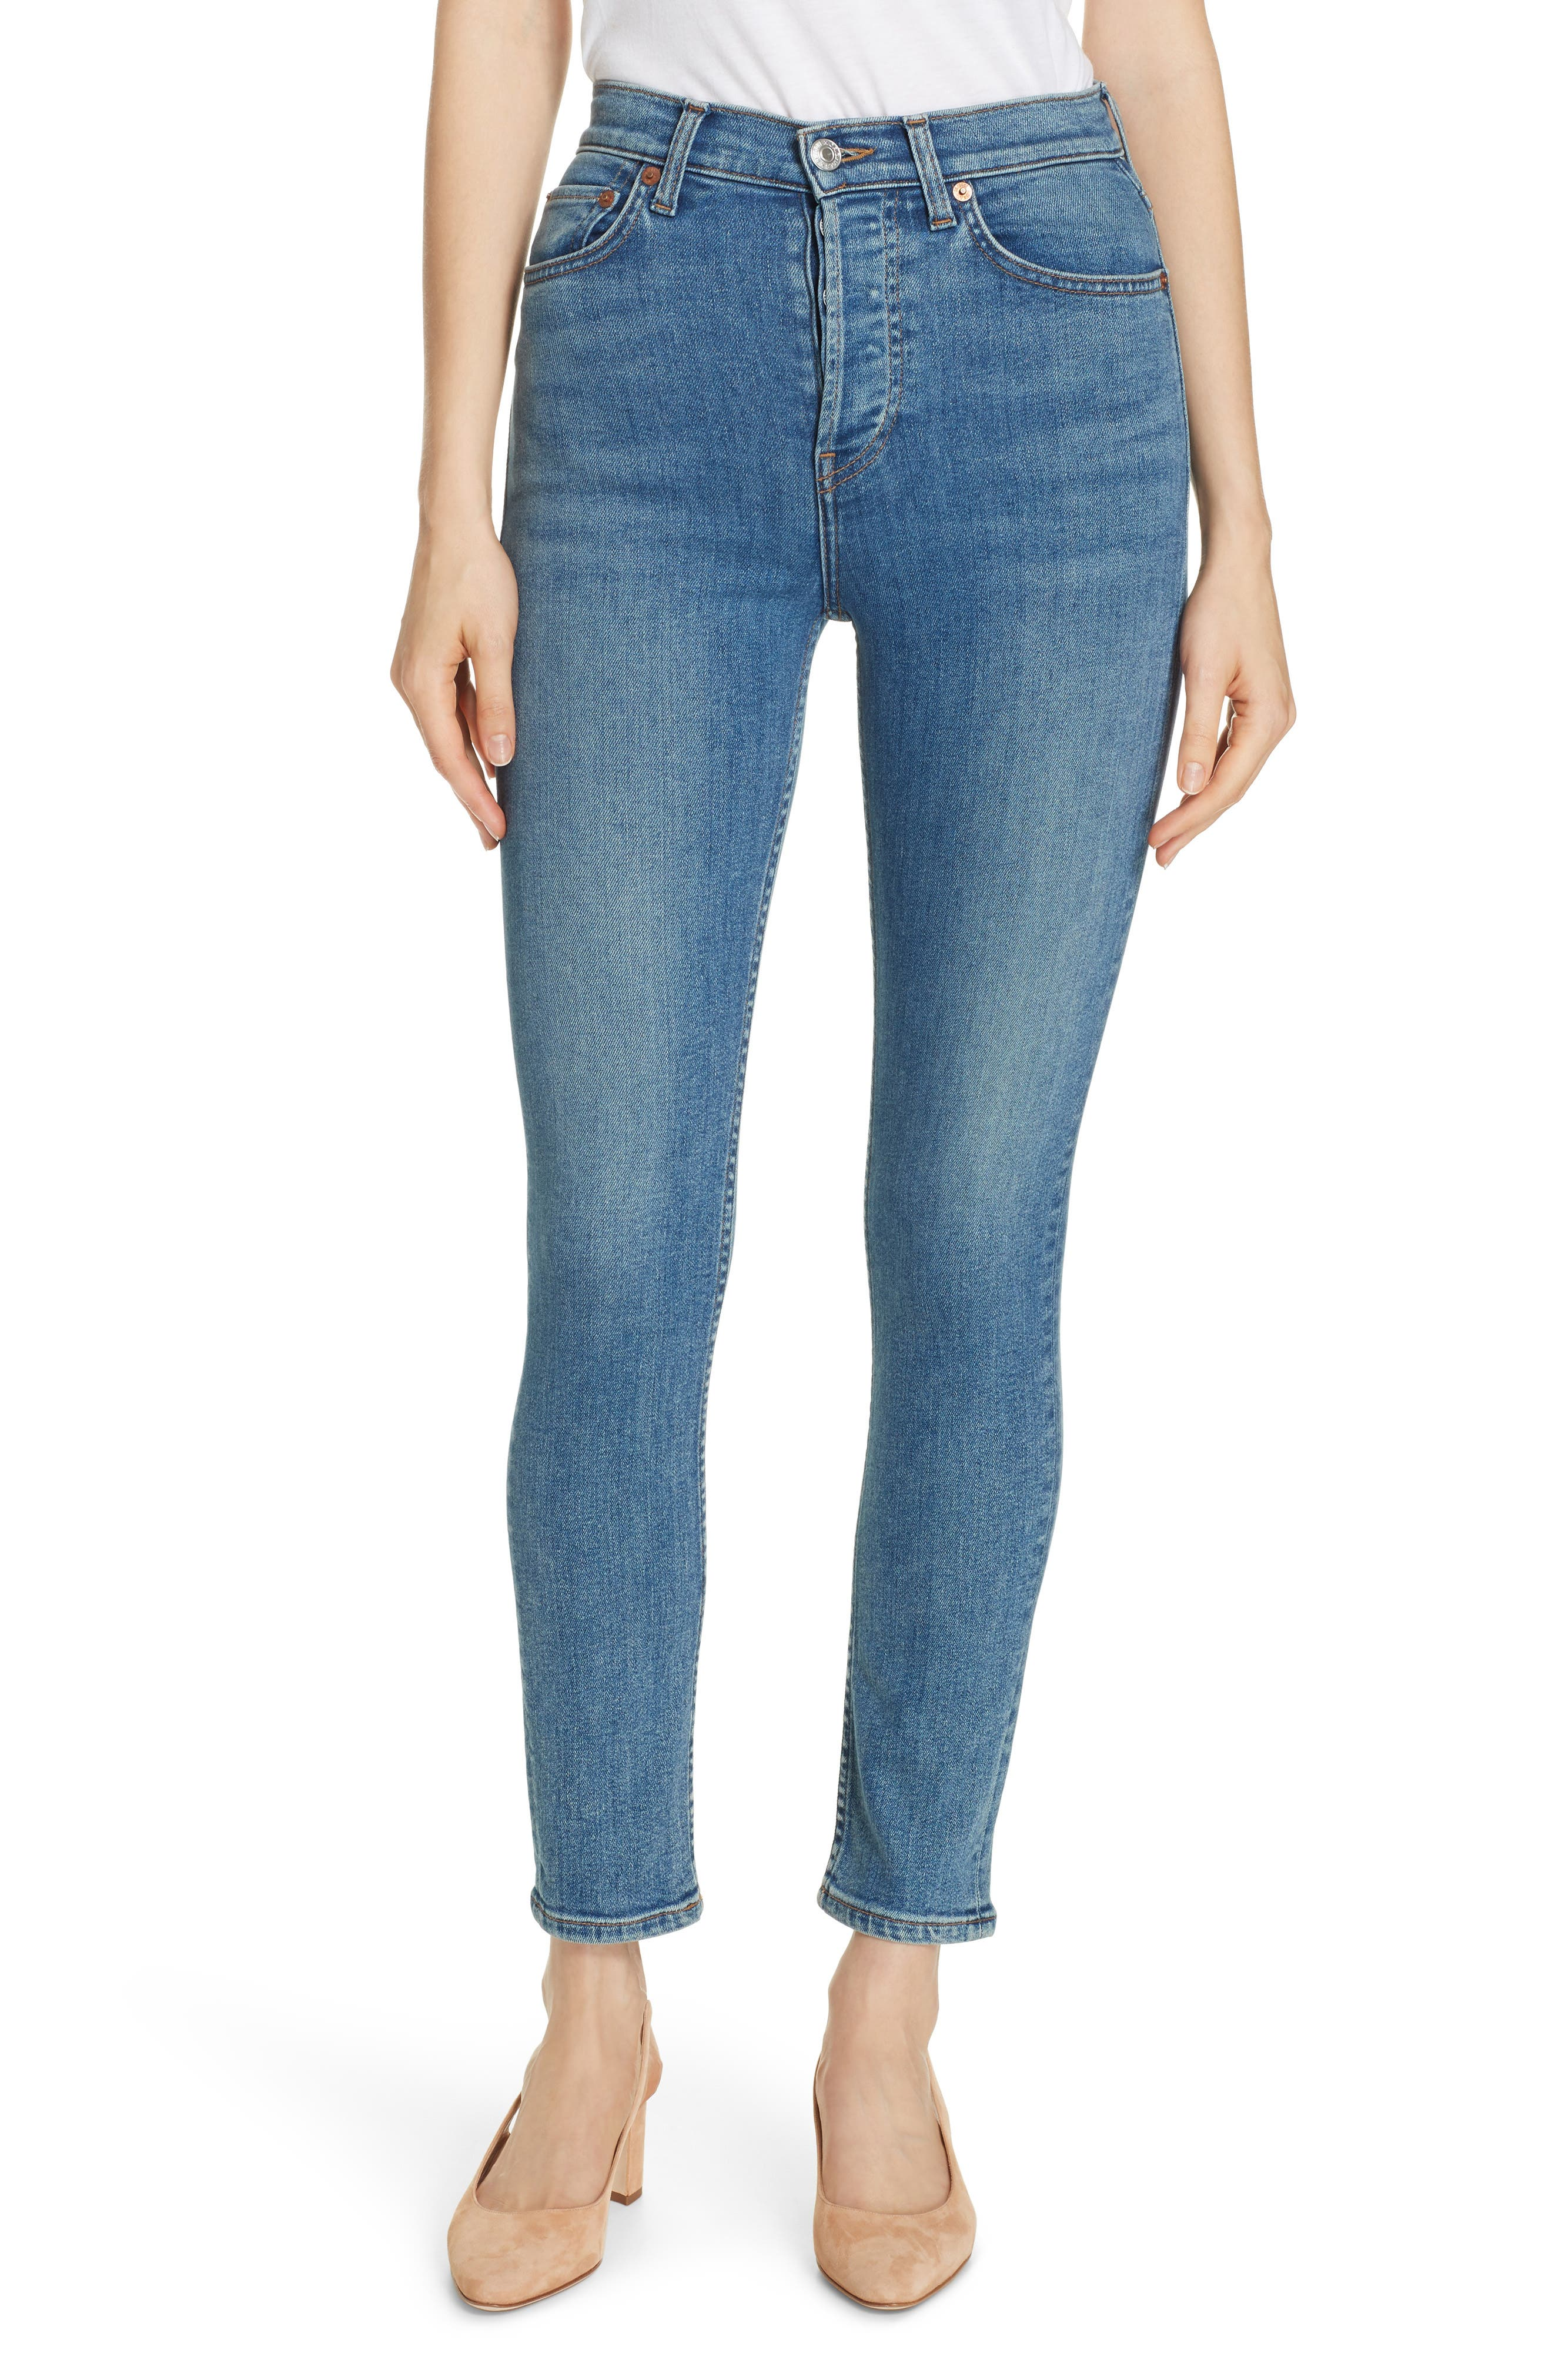 a96cc493f7f8 Women s Re Done High-Waisted Jeans